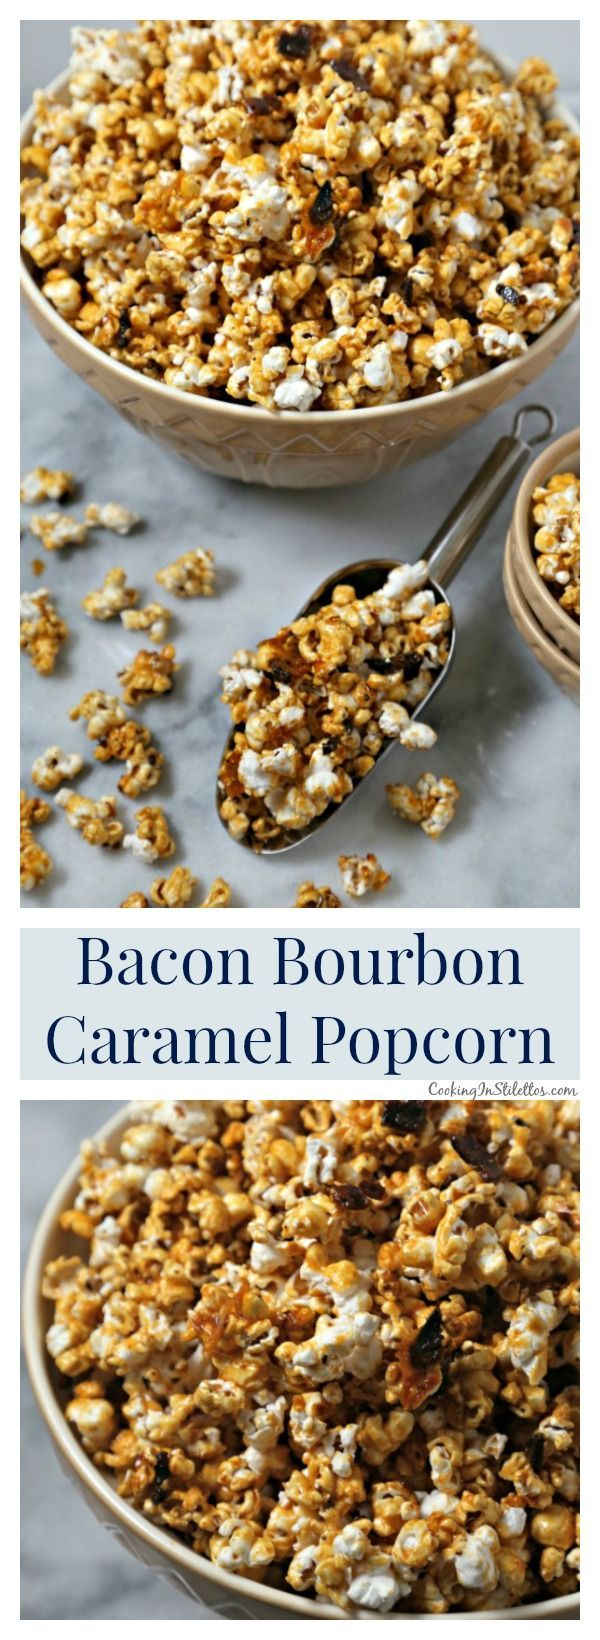 Bacon Bourbon Caramel Popcorn from CookingInStilettos.com is the ultimate salty…